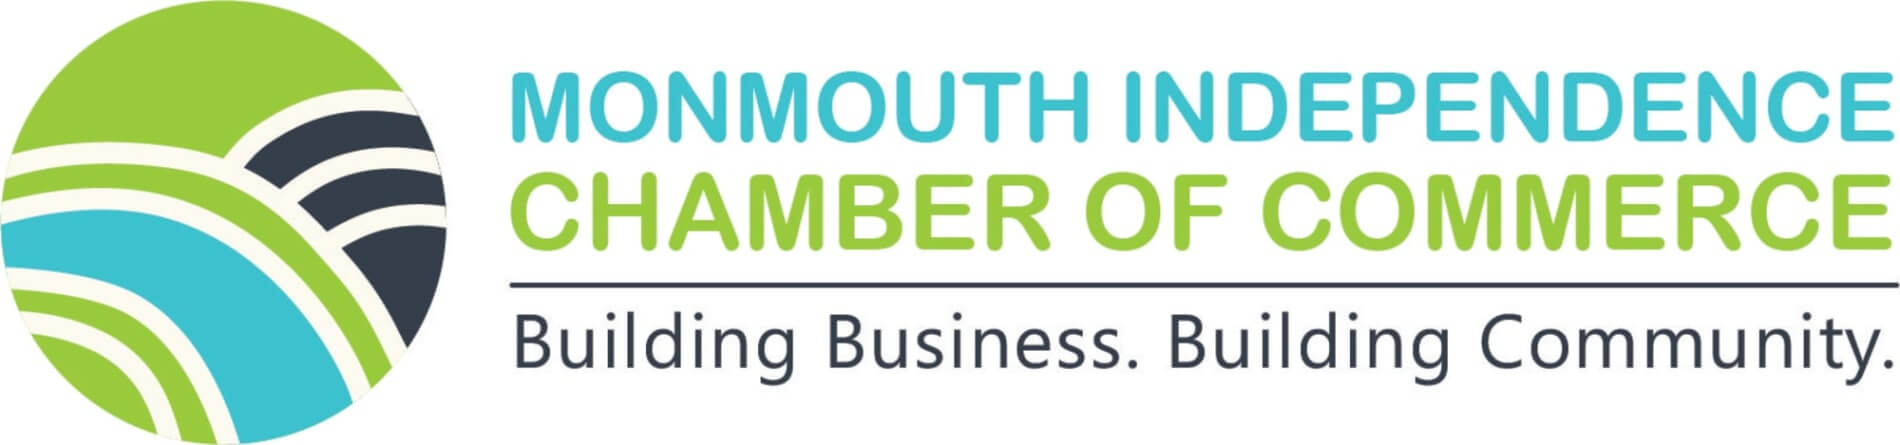 Monmouth Independence Chamber